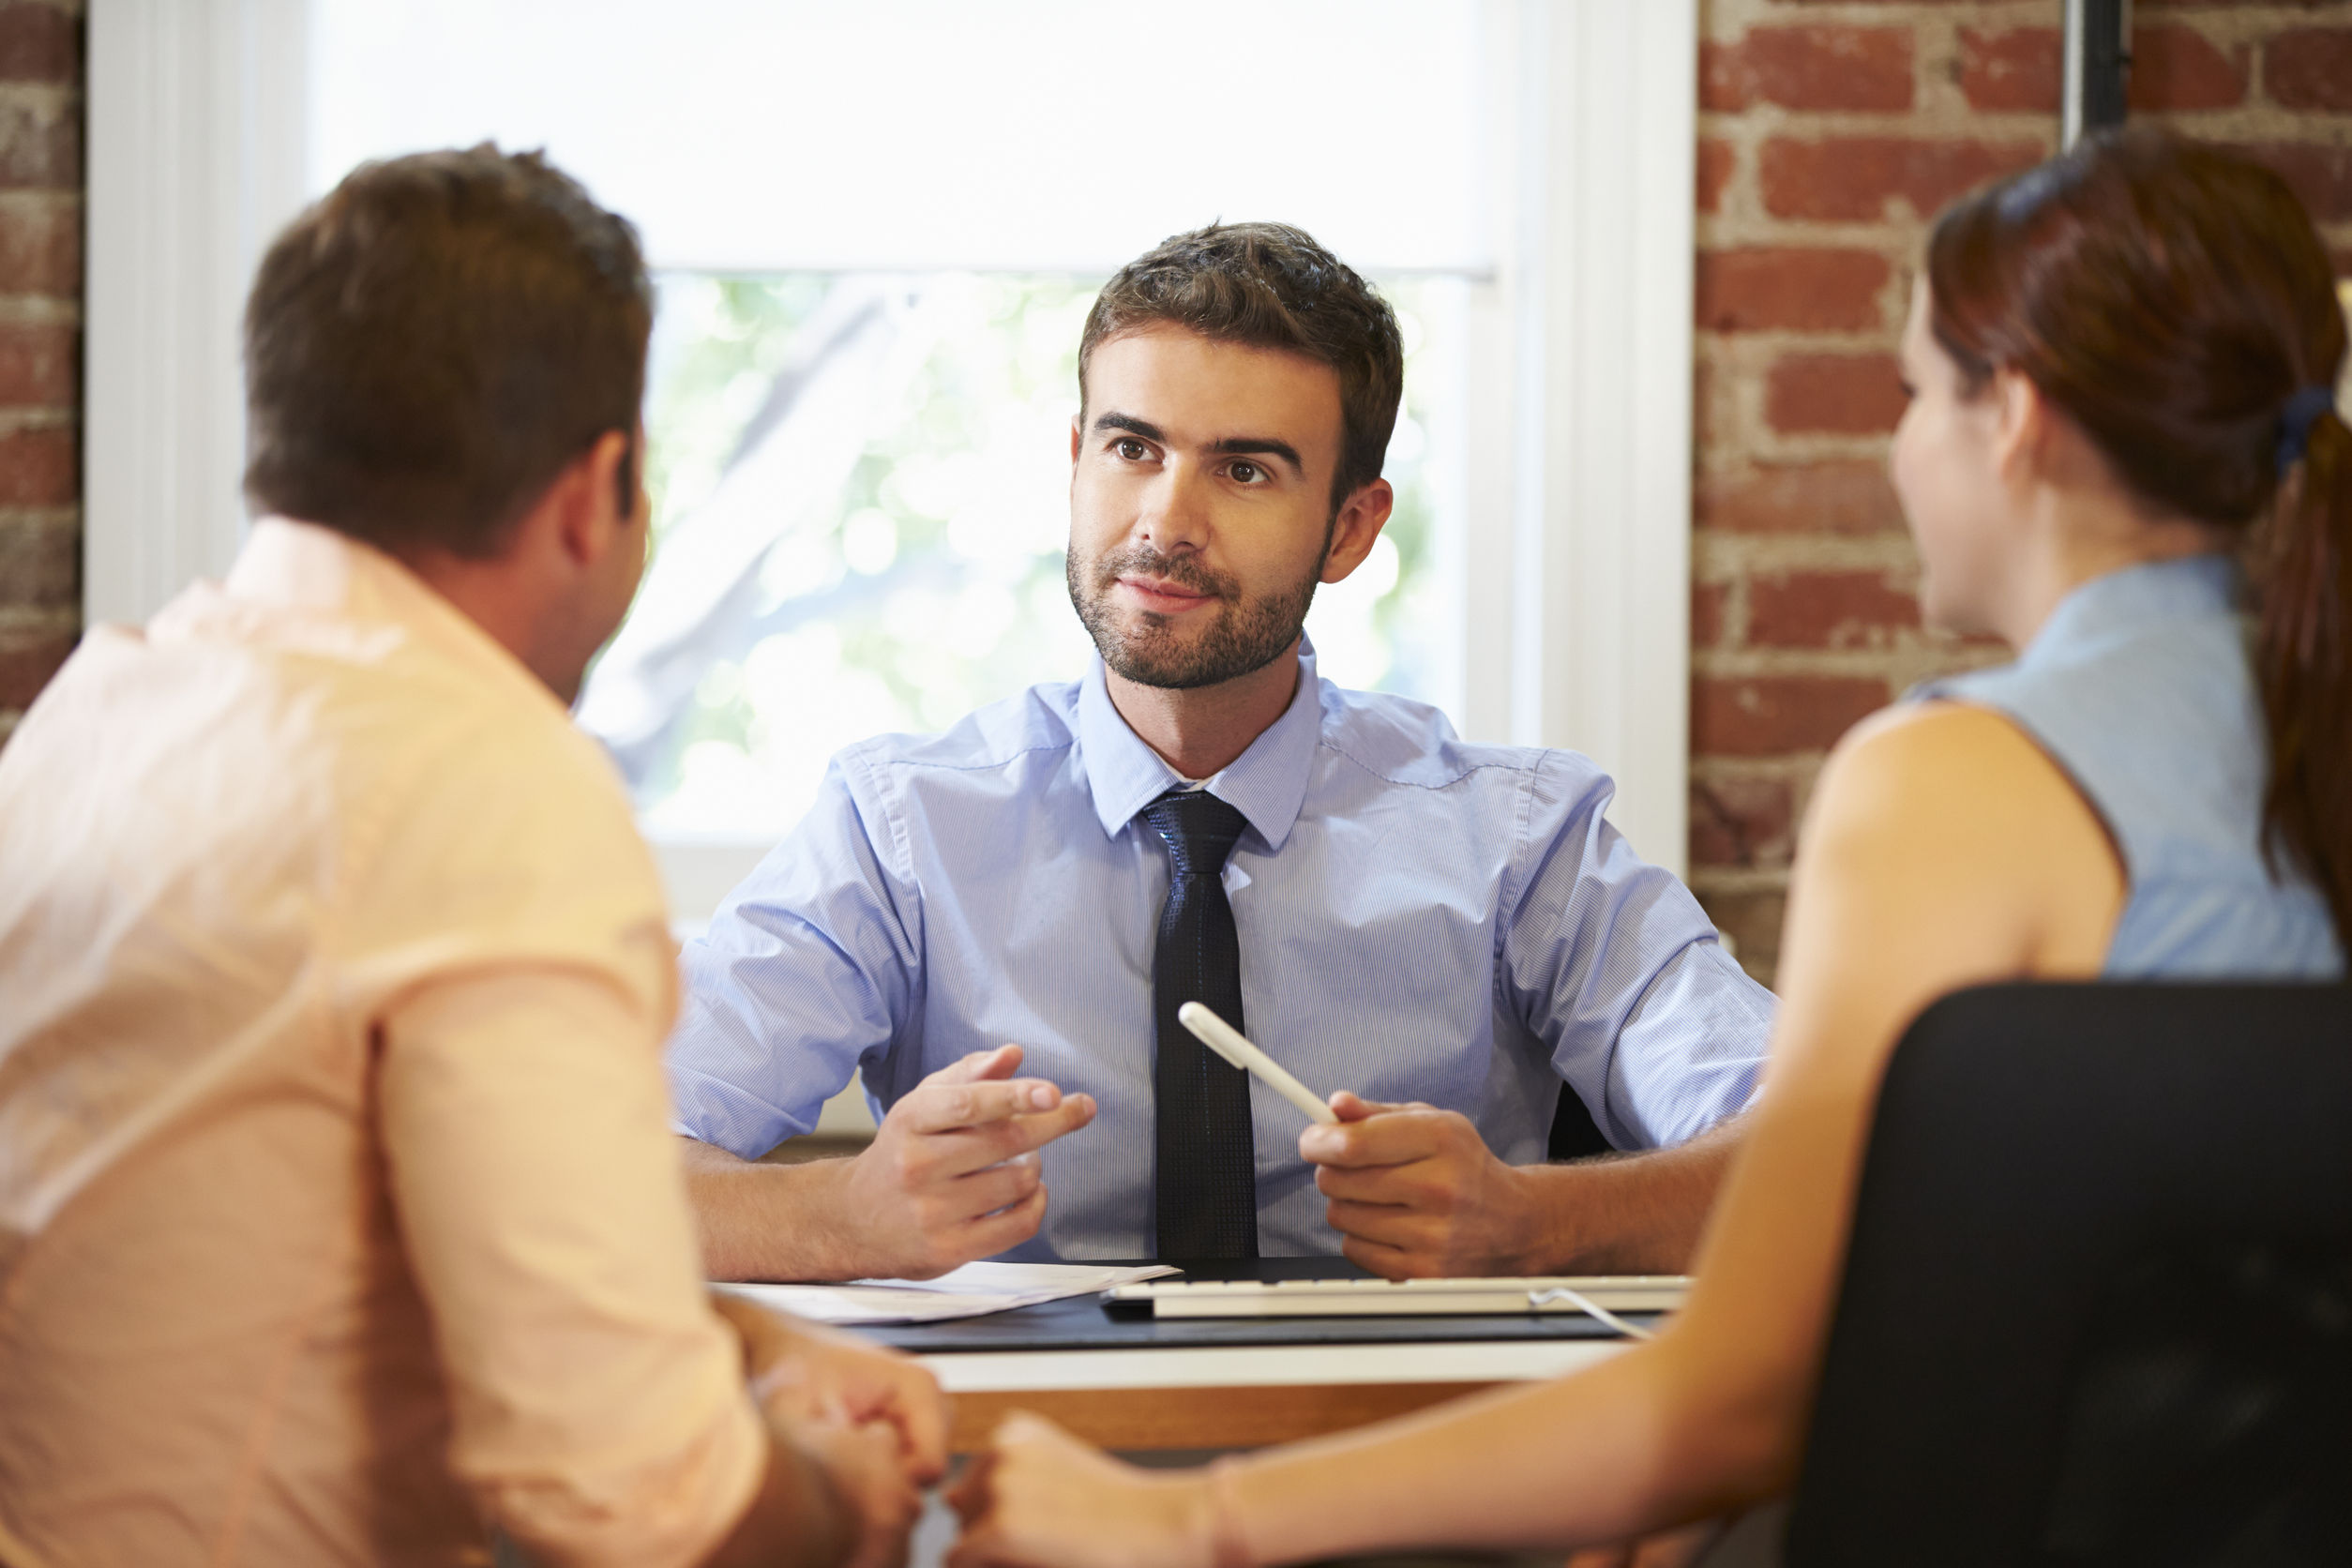 couple meeting with financial advisor in office brand loyalty marketing branding office working accounting concept meeting